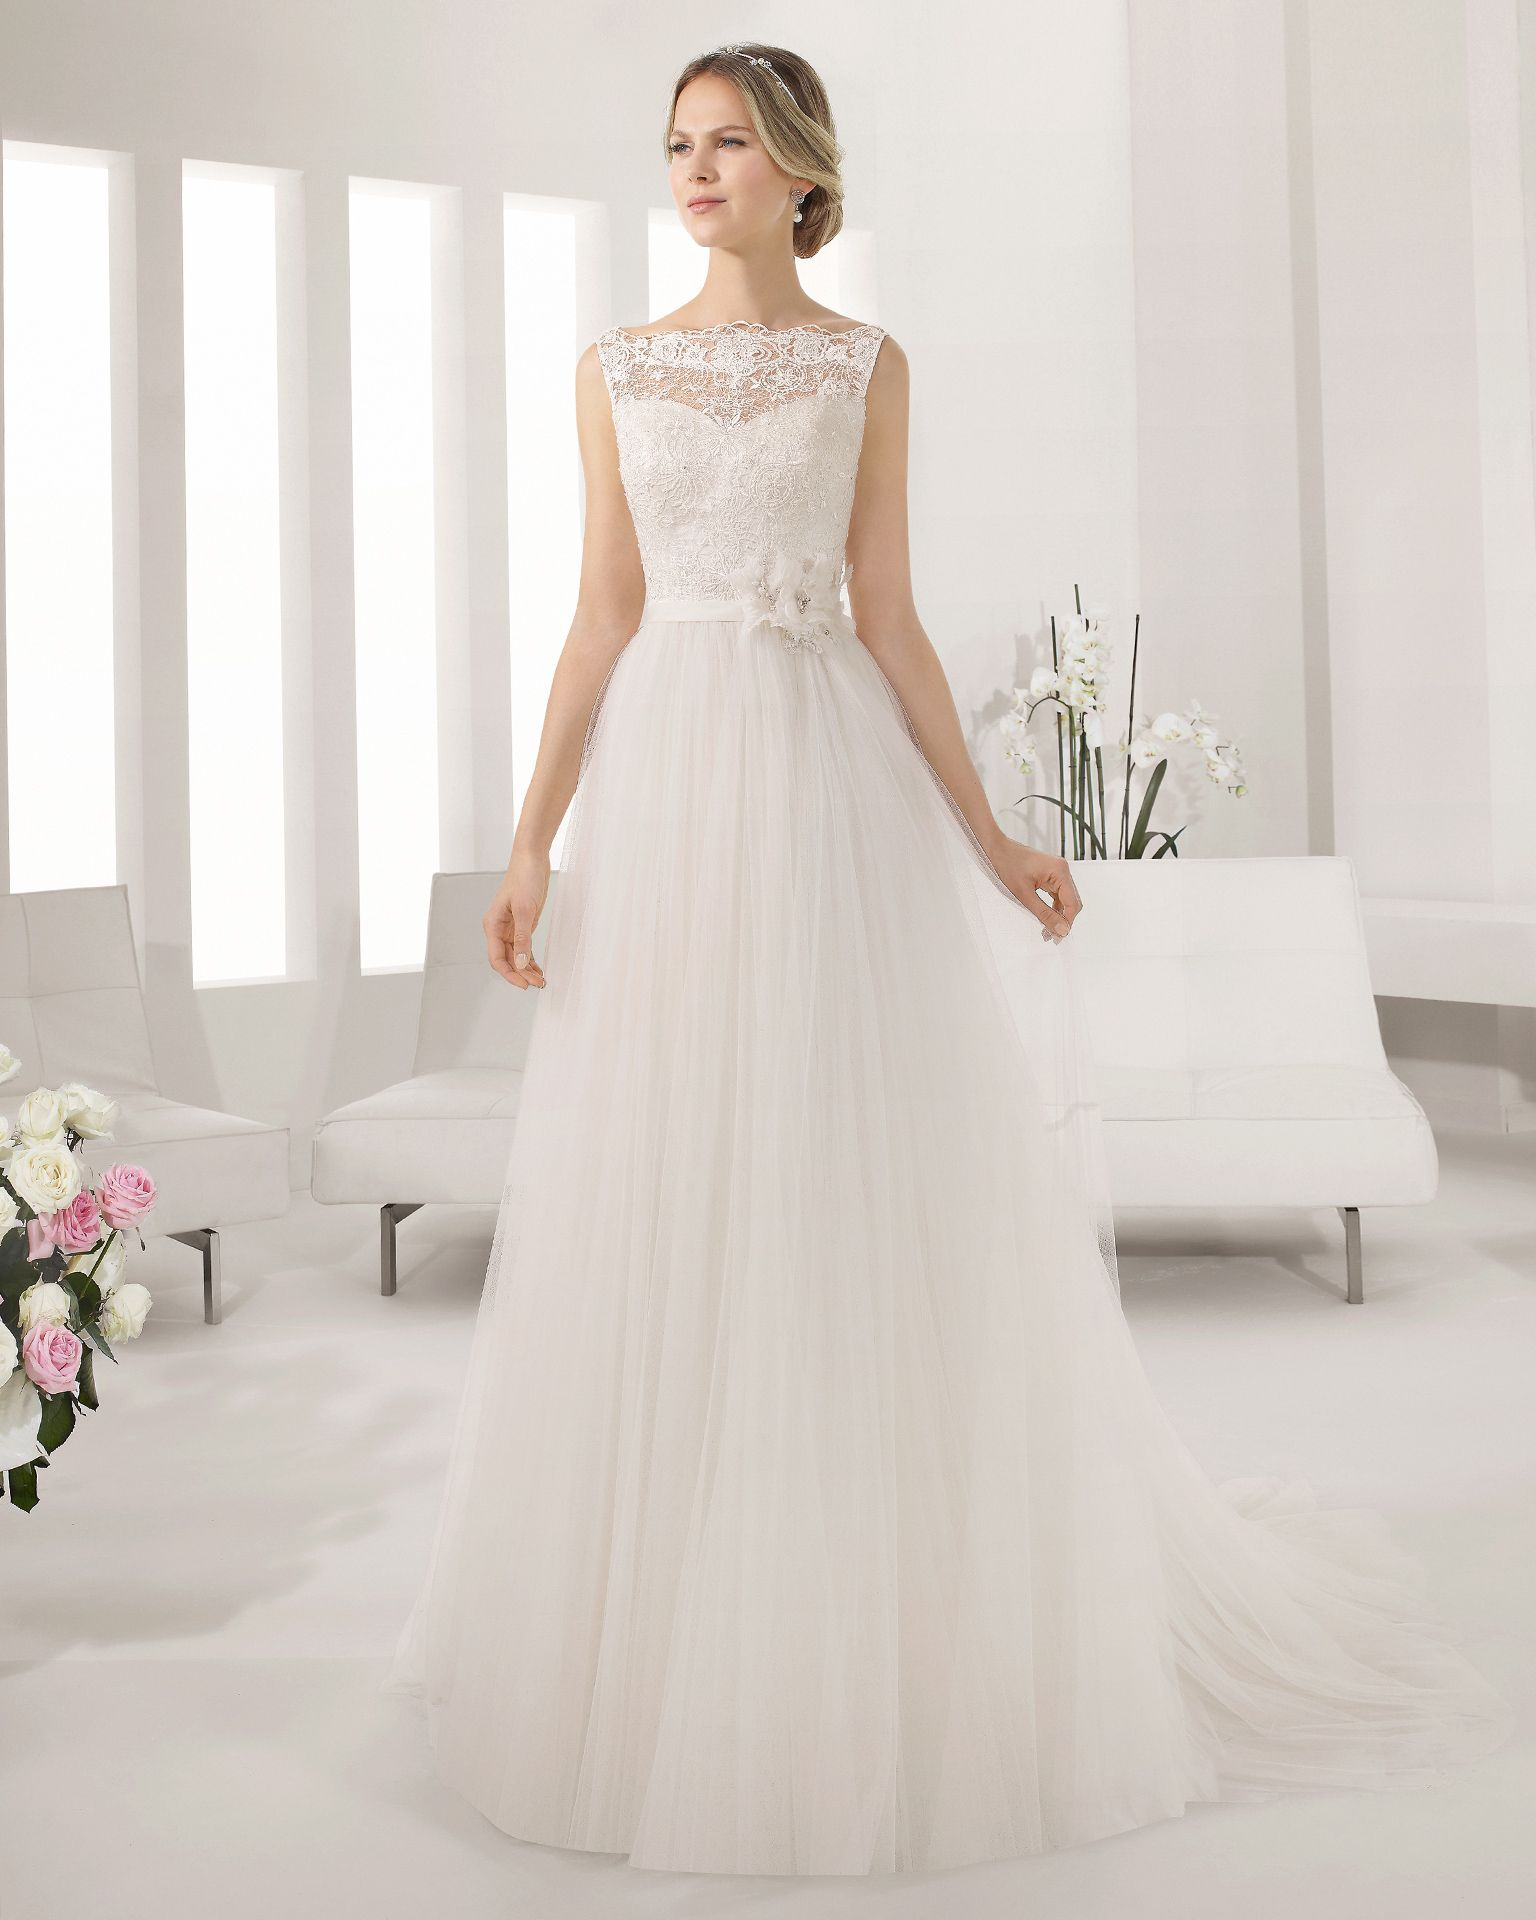 Pin Von Vanda Desiree Auf Wedding Dresses Pinterest